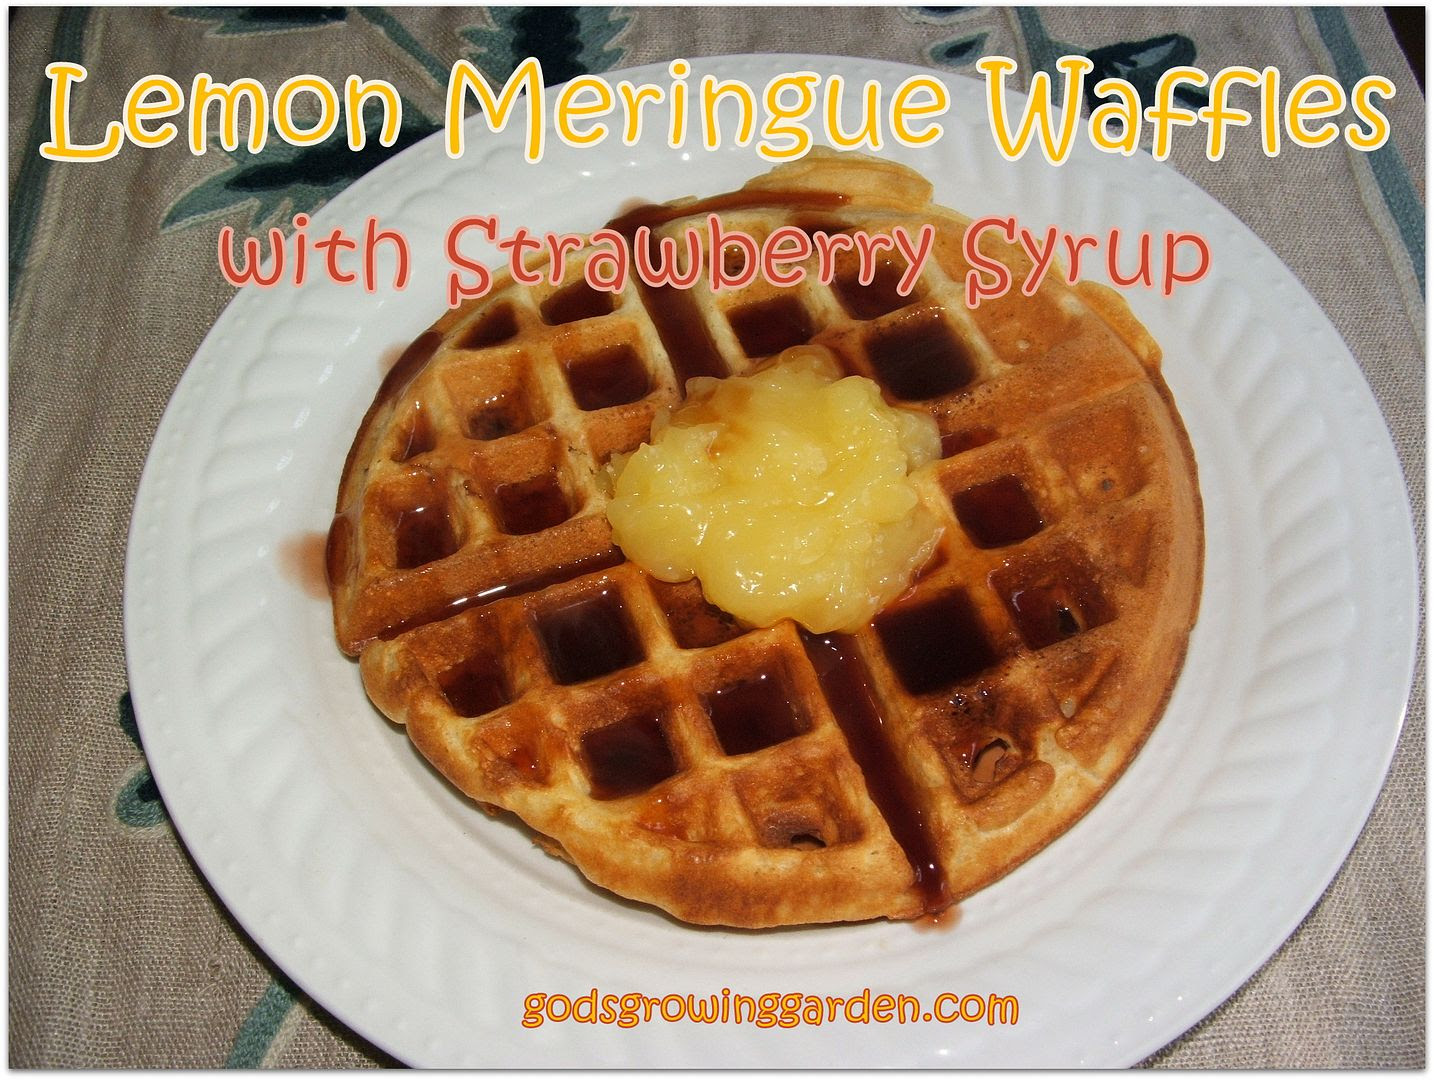 Lemon Meringue Waffles by Angie Ouellette-Tower for godsgrowinggarden.com/ photo 007_zps7f6a02ef.jpg